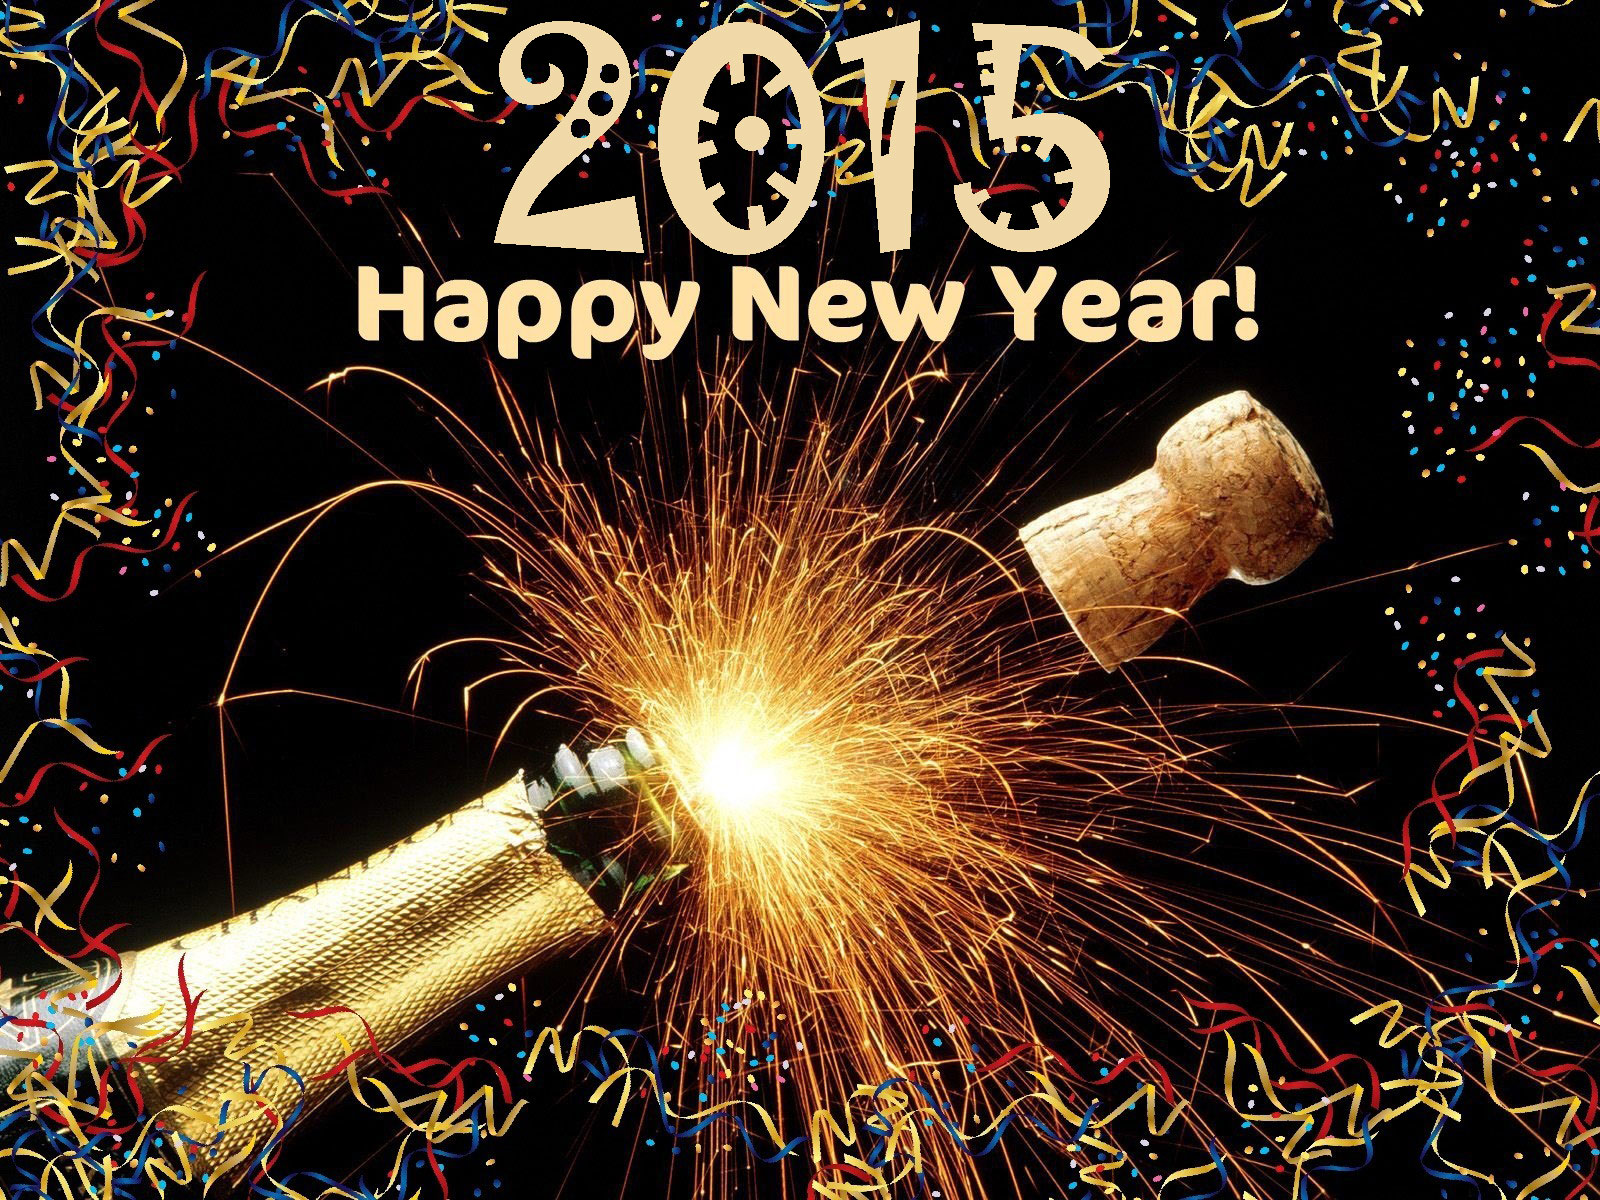 2015 new year 2015 wishes happy new year 2015 greetings 1600x1200